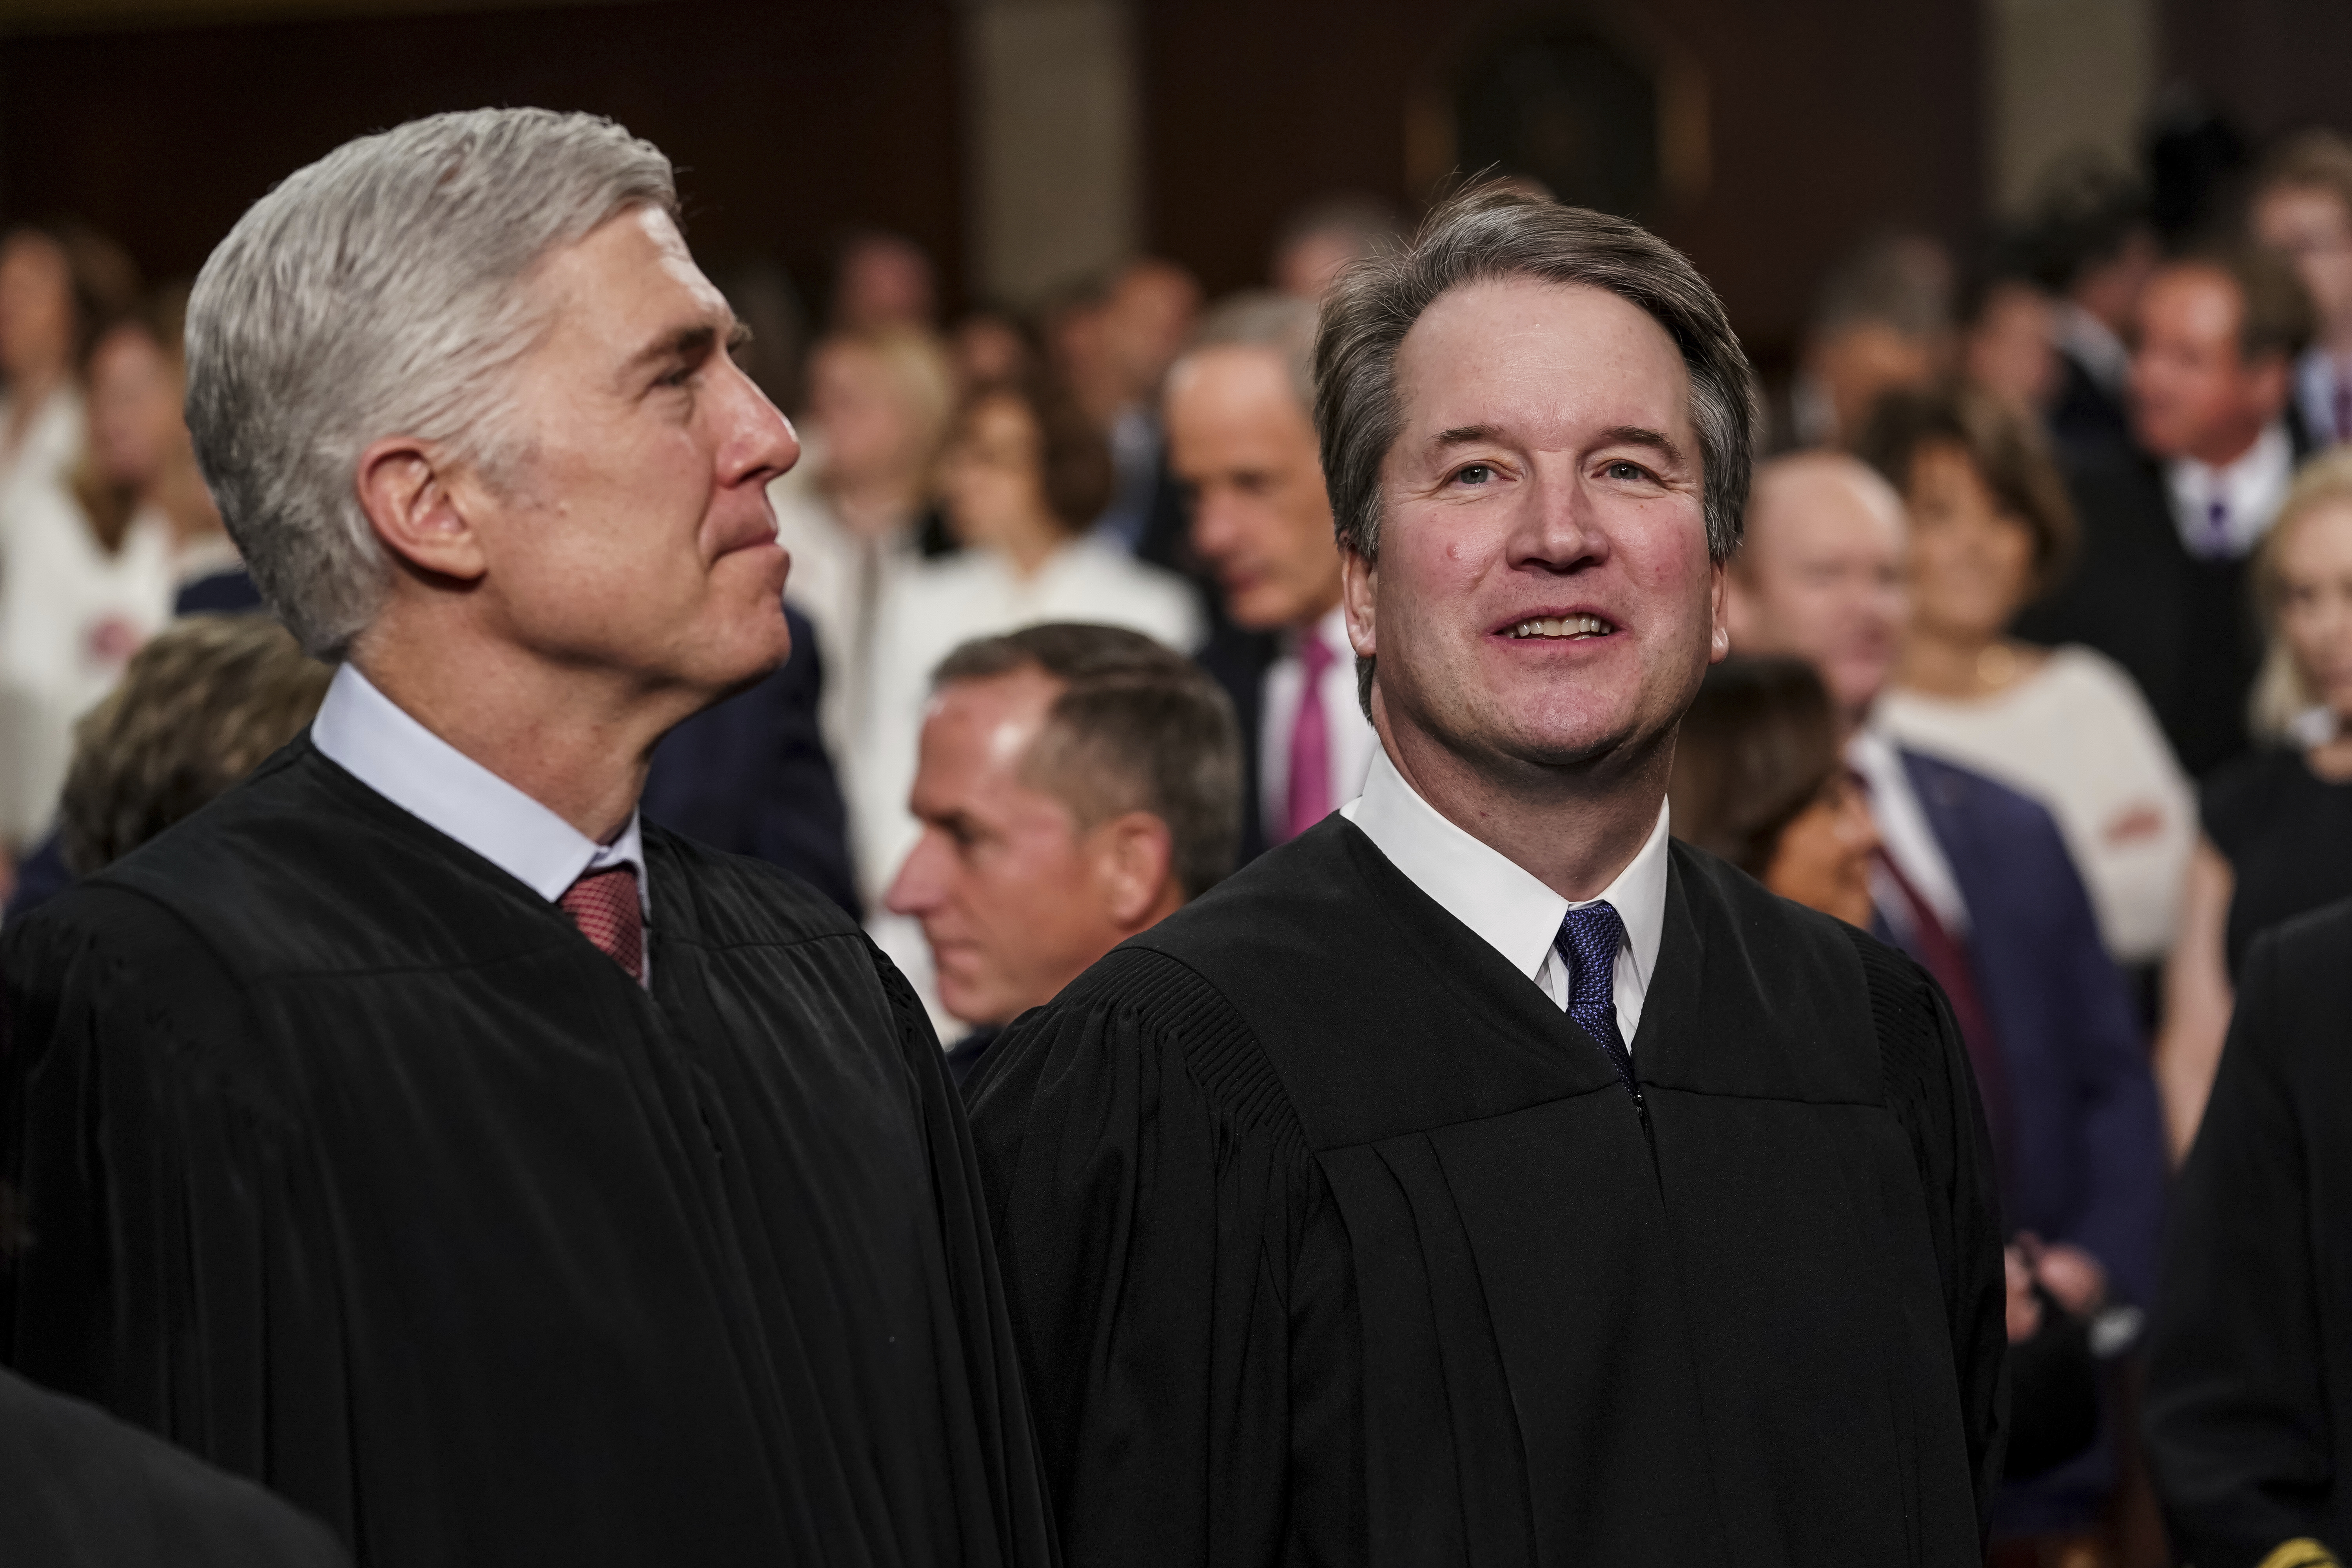 Trump's 2 Supreme Court picks on opposite sides in 2 cases